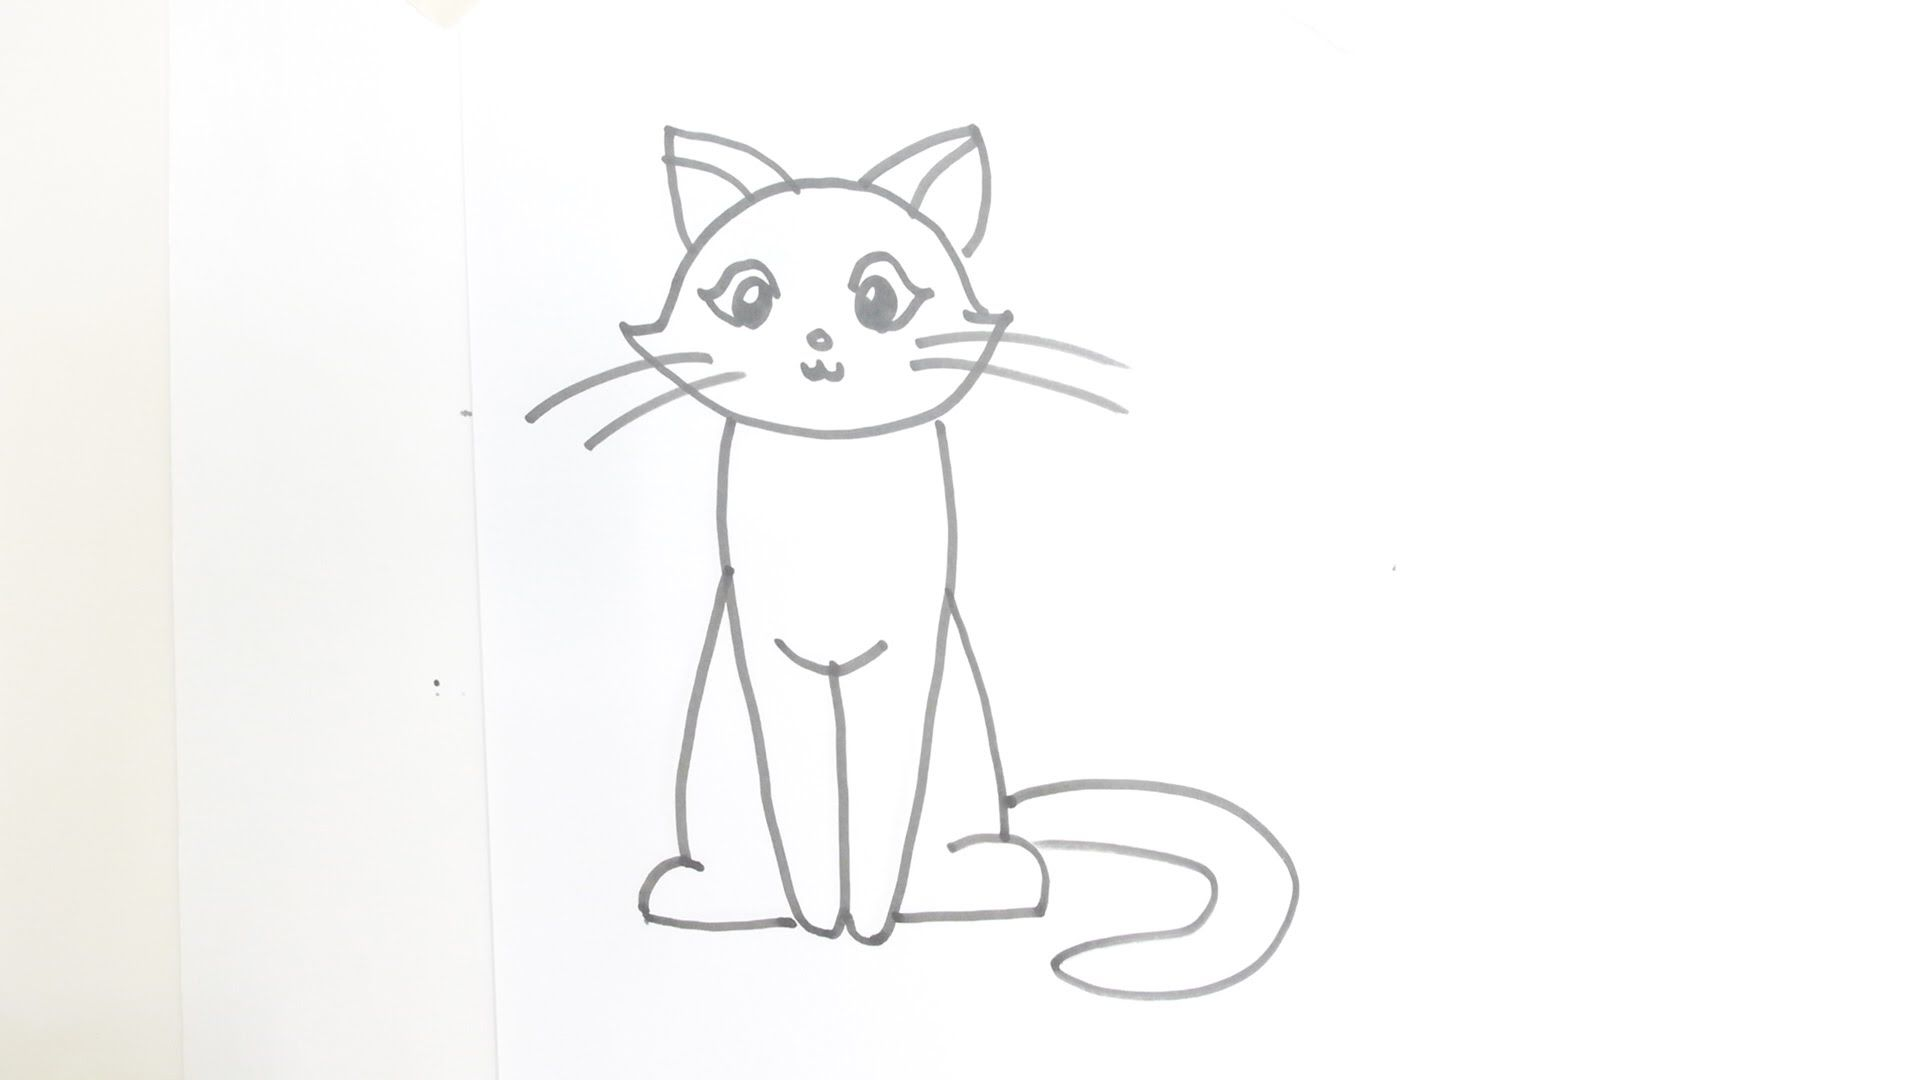 How To Draw A Cartoon Cat Sitting Cartoon Cat Drawing Cat Face Drawing Cat Drawing Tutorial